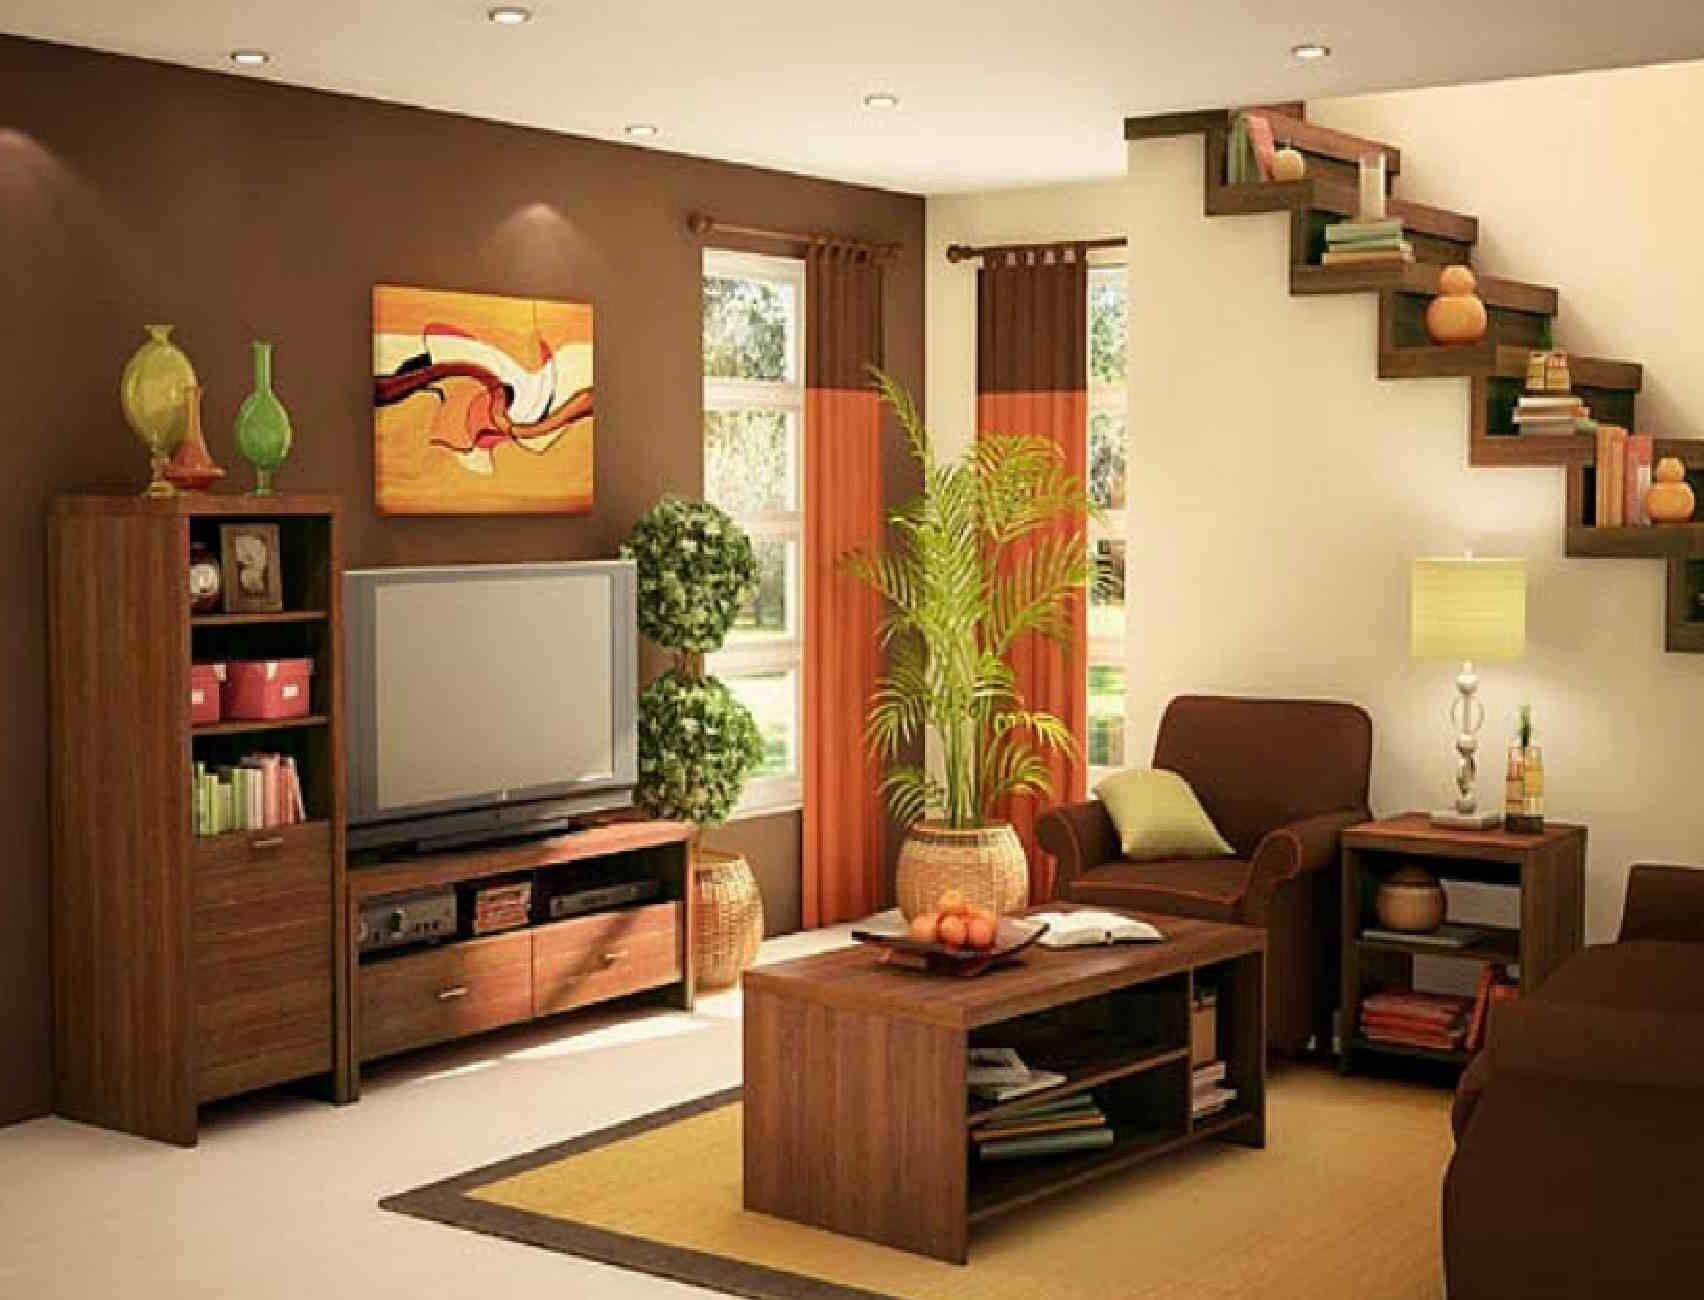 interior designs of small houses. Source  House Interior Design Attractive Interior Designs For Small Houses In The Philippines